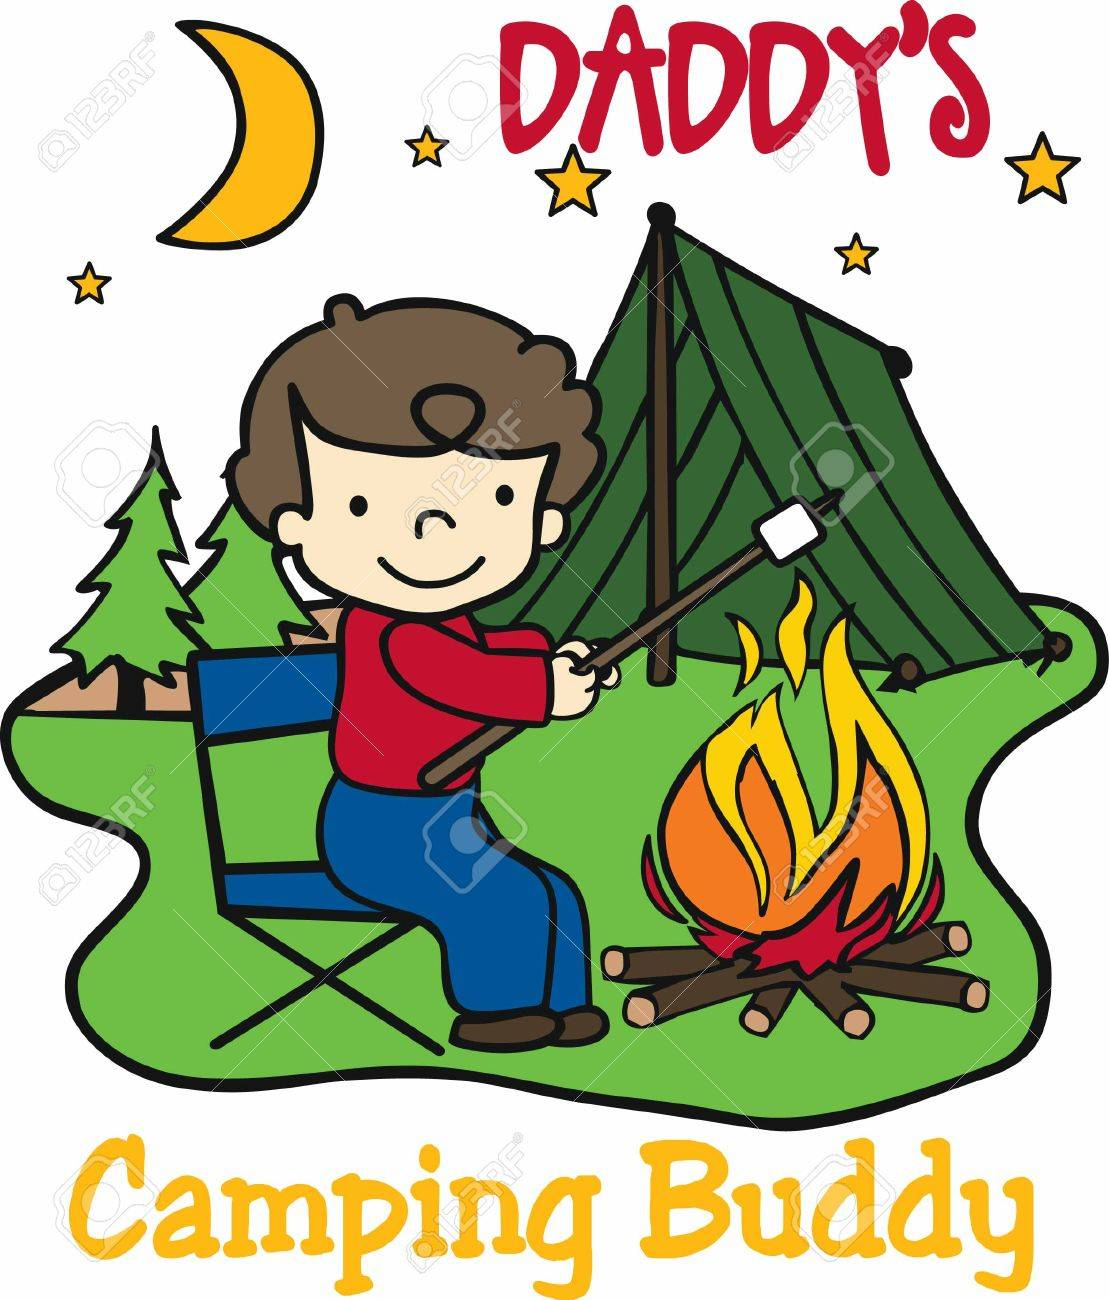 Happy Camper Roasting Marshmallows Over An Open Fire At Night Stock Vector